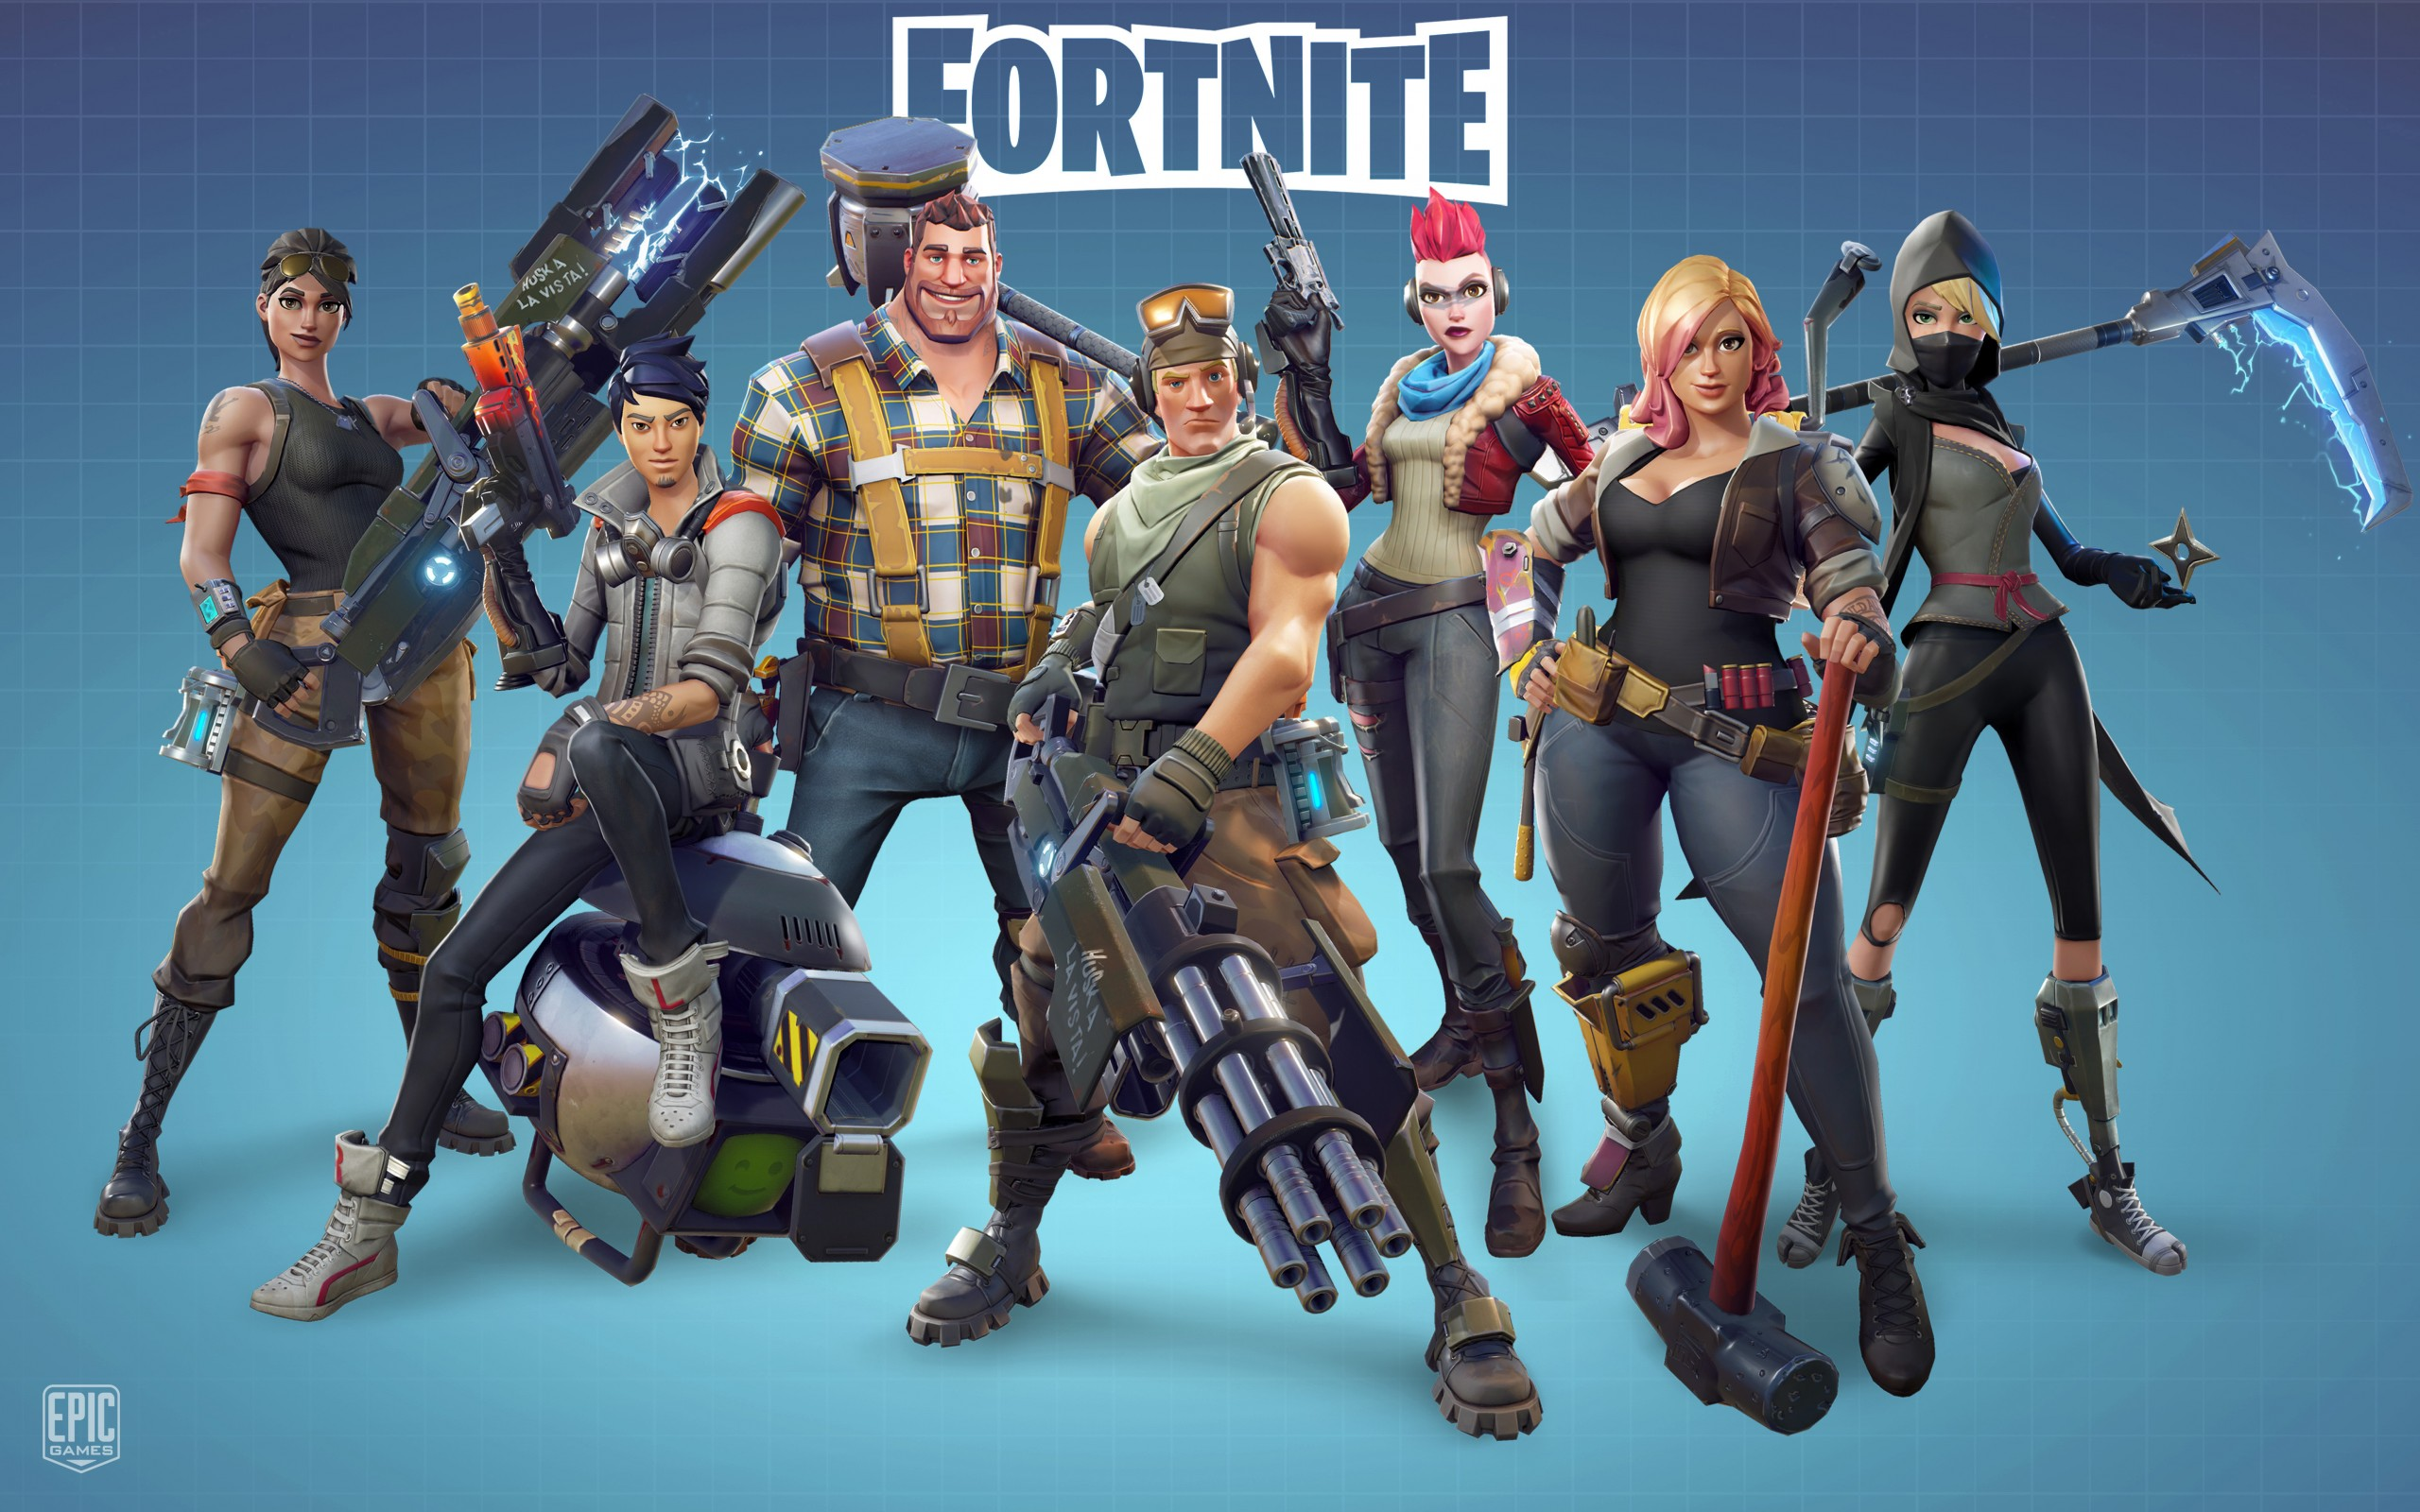 Iphone 5 Fall Wallpaper Fortnite Game 2017 5k Wallpapers Hd Wallpapers Id 21004